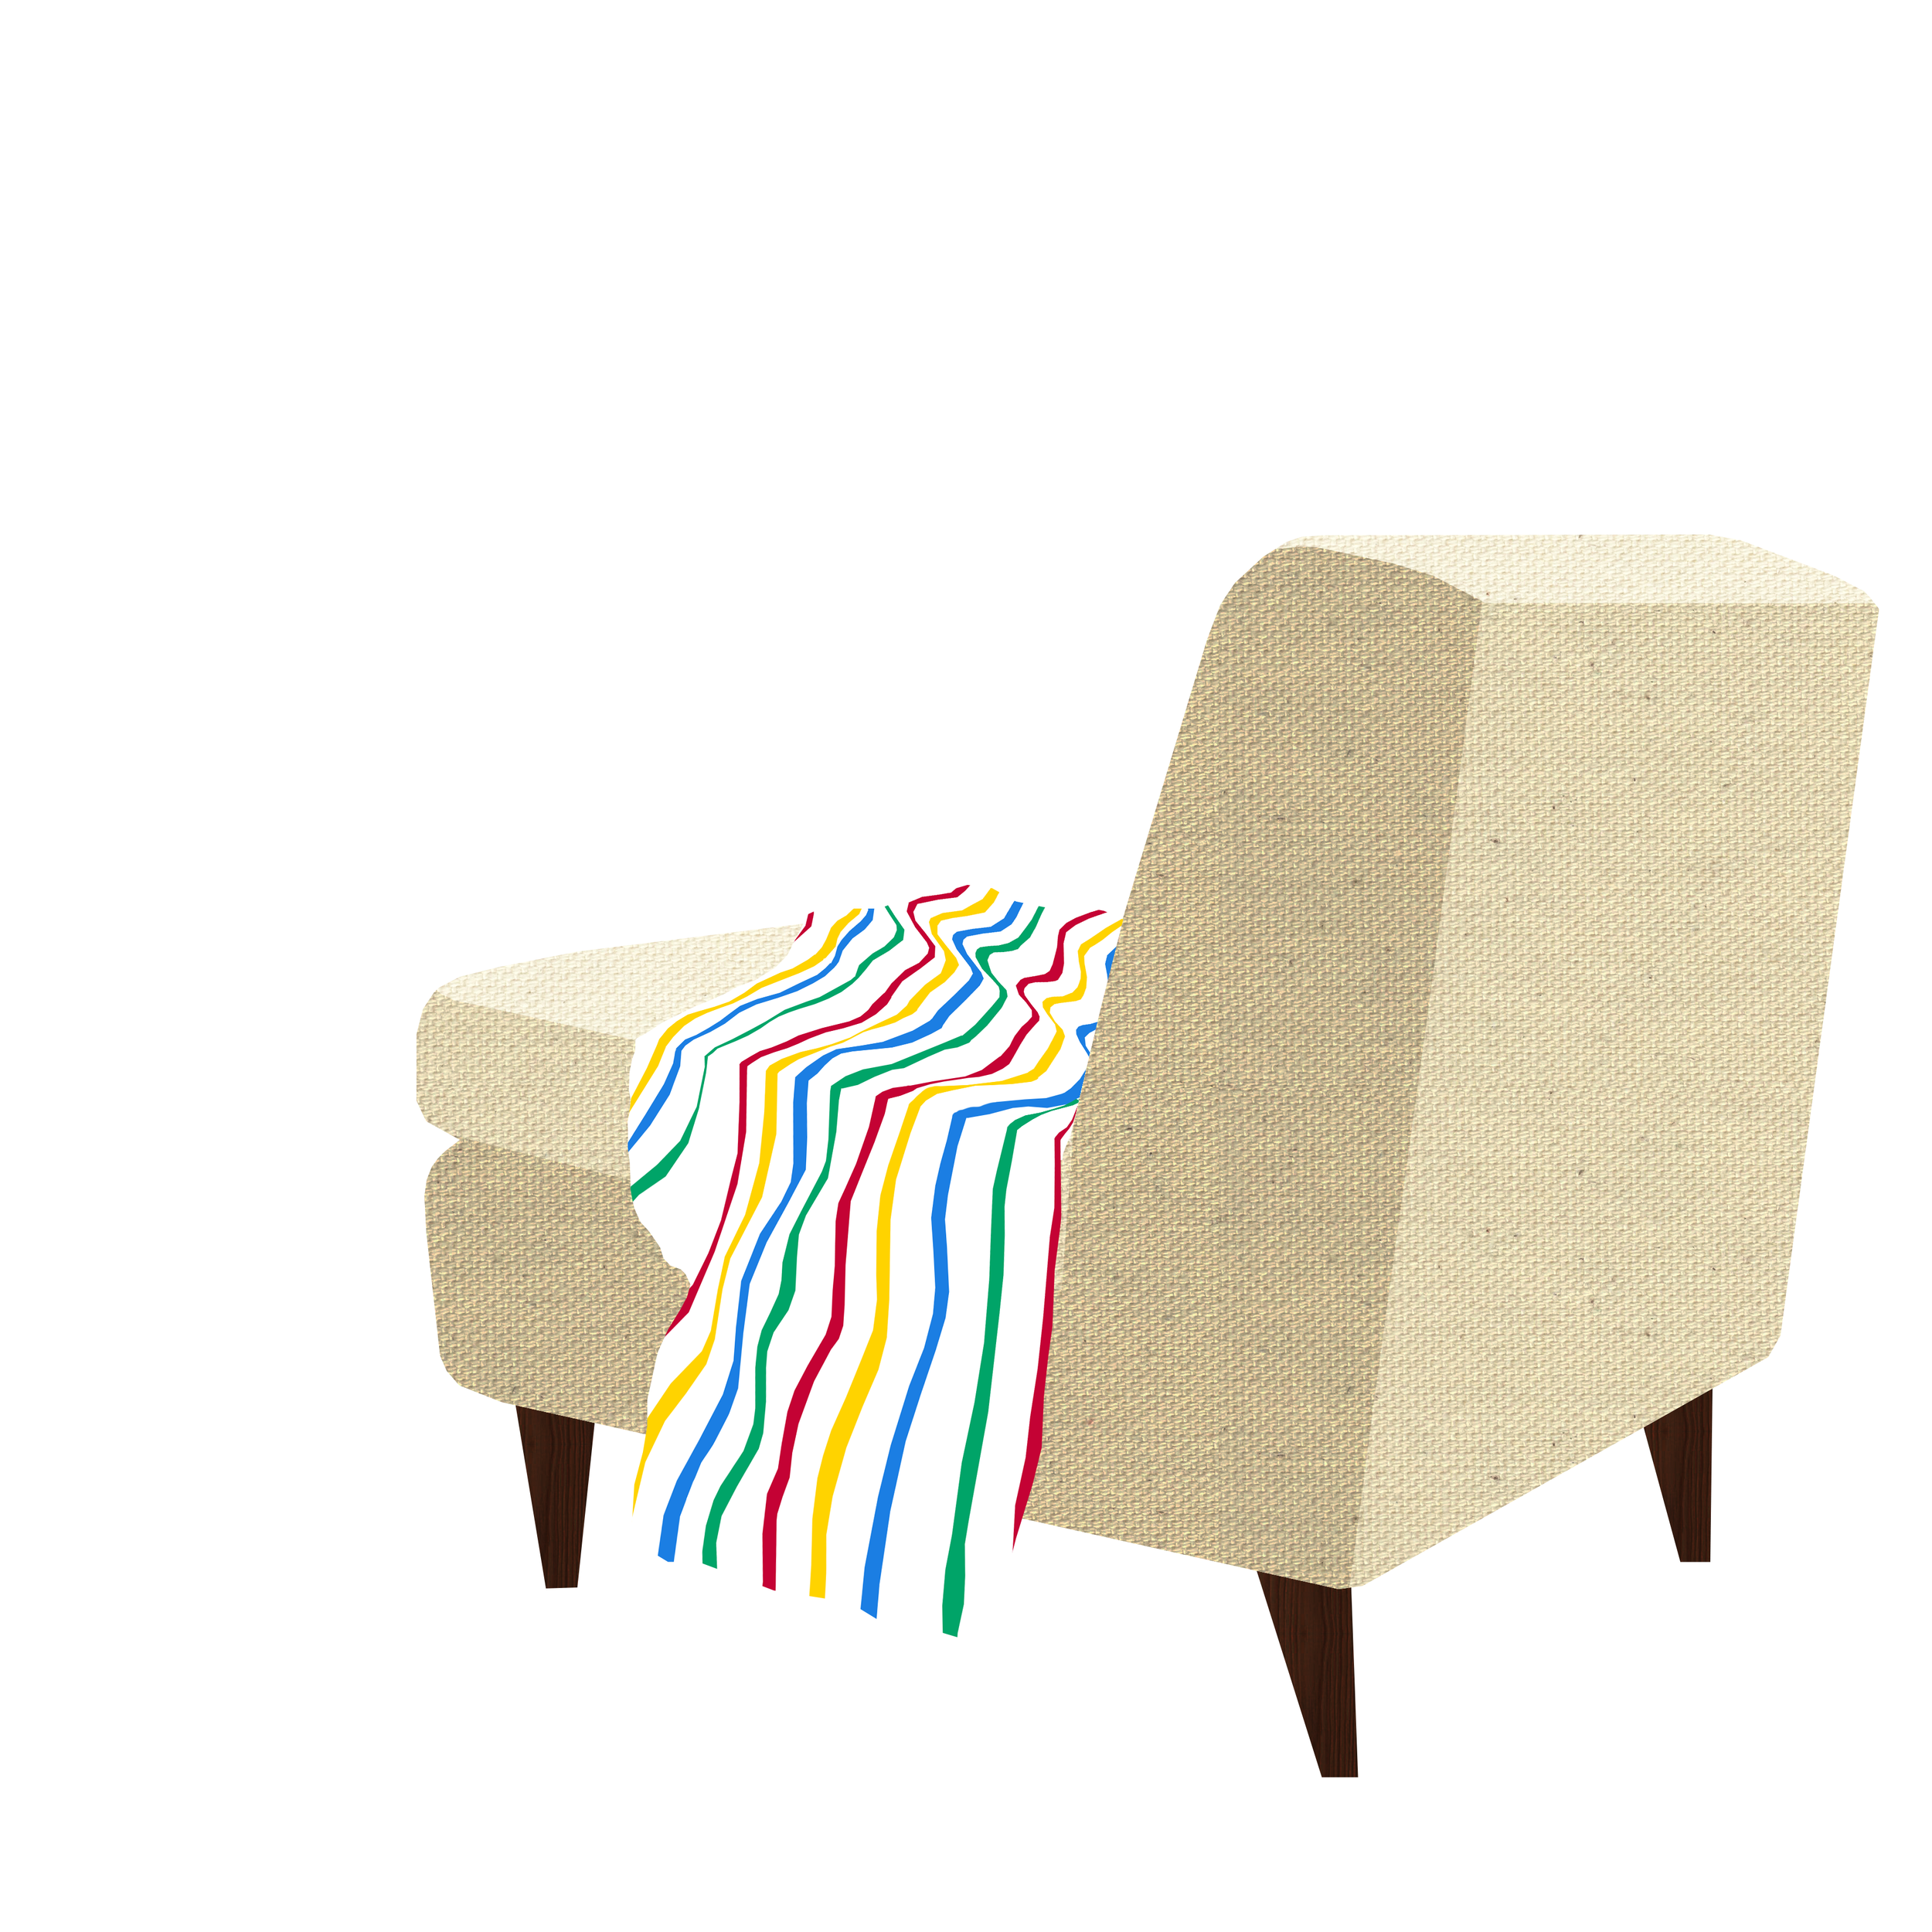 Chair + Blanket